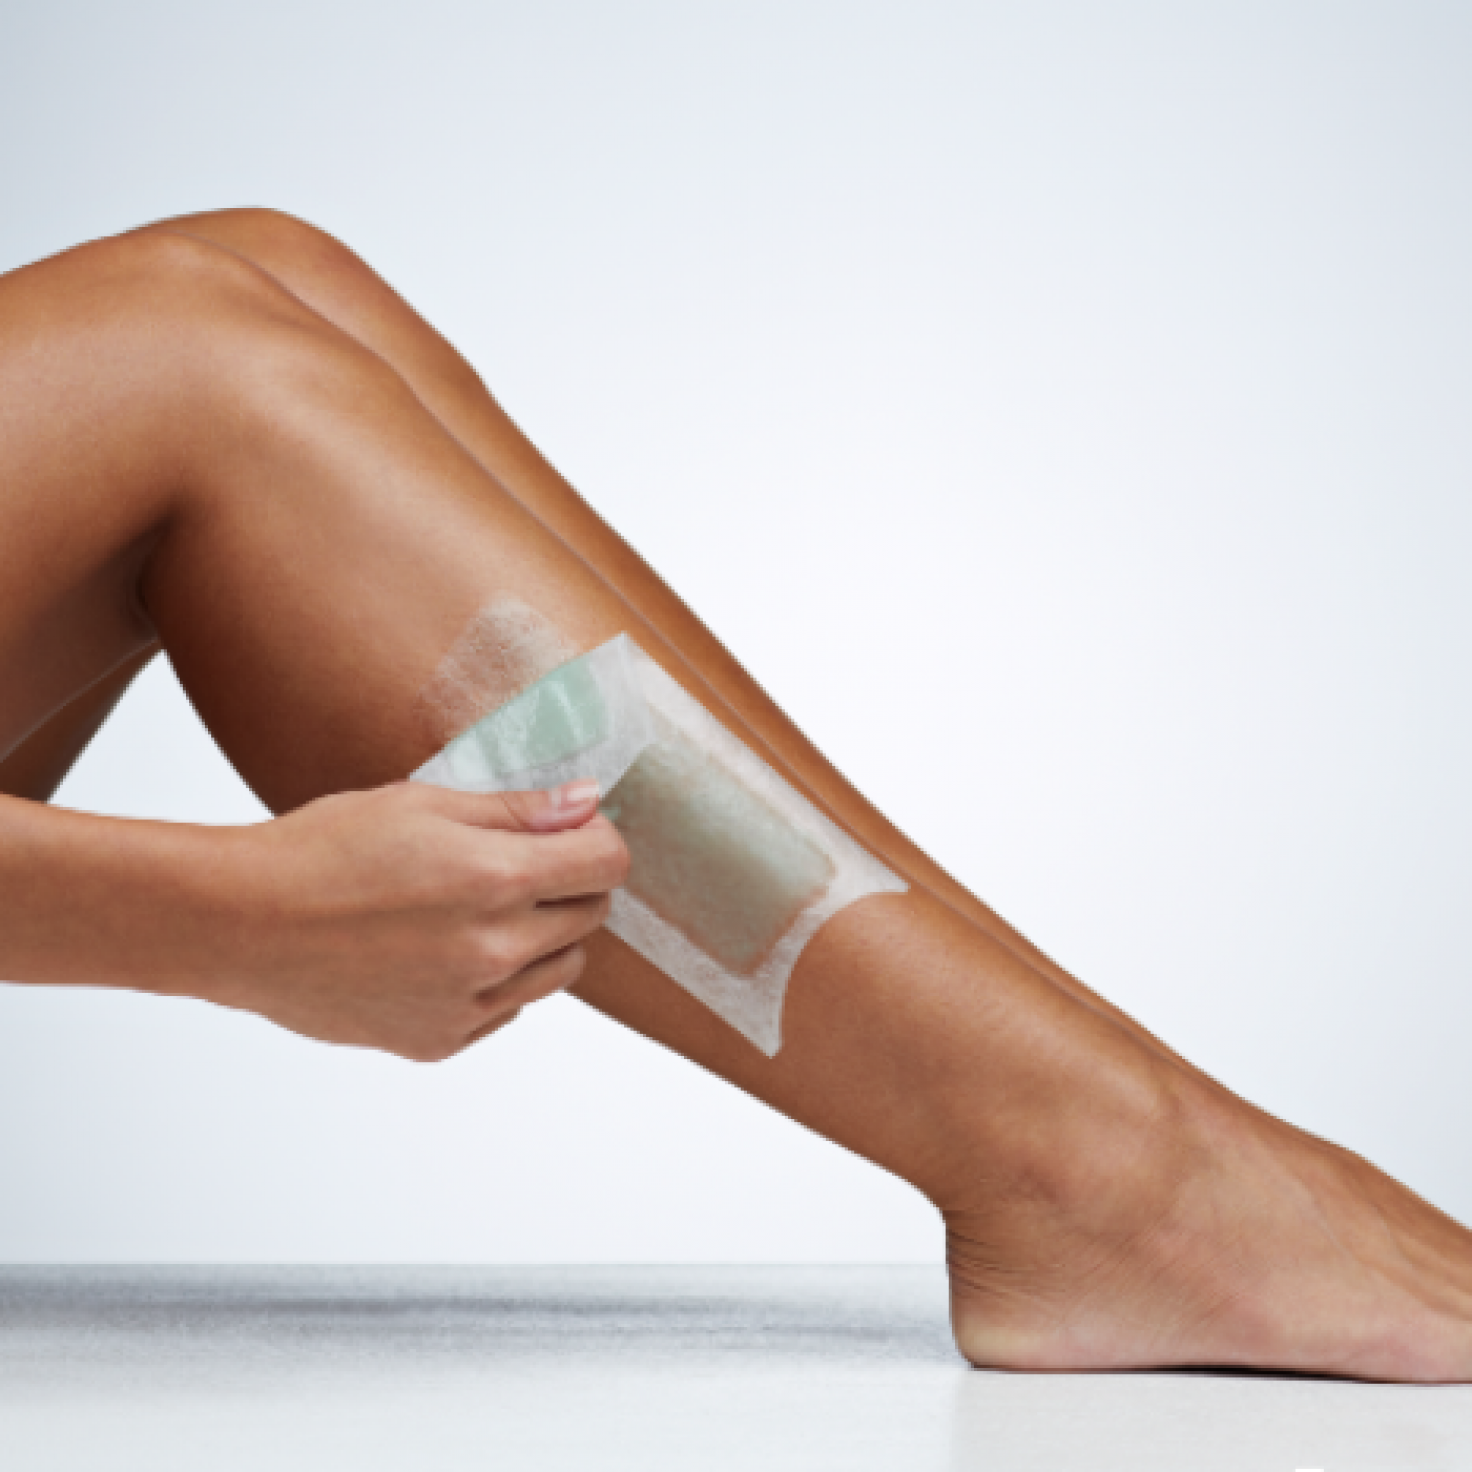 The Best Home Waxing Kits For Your Face And Body